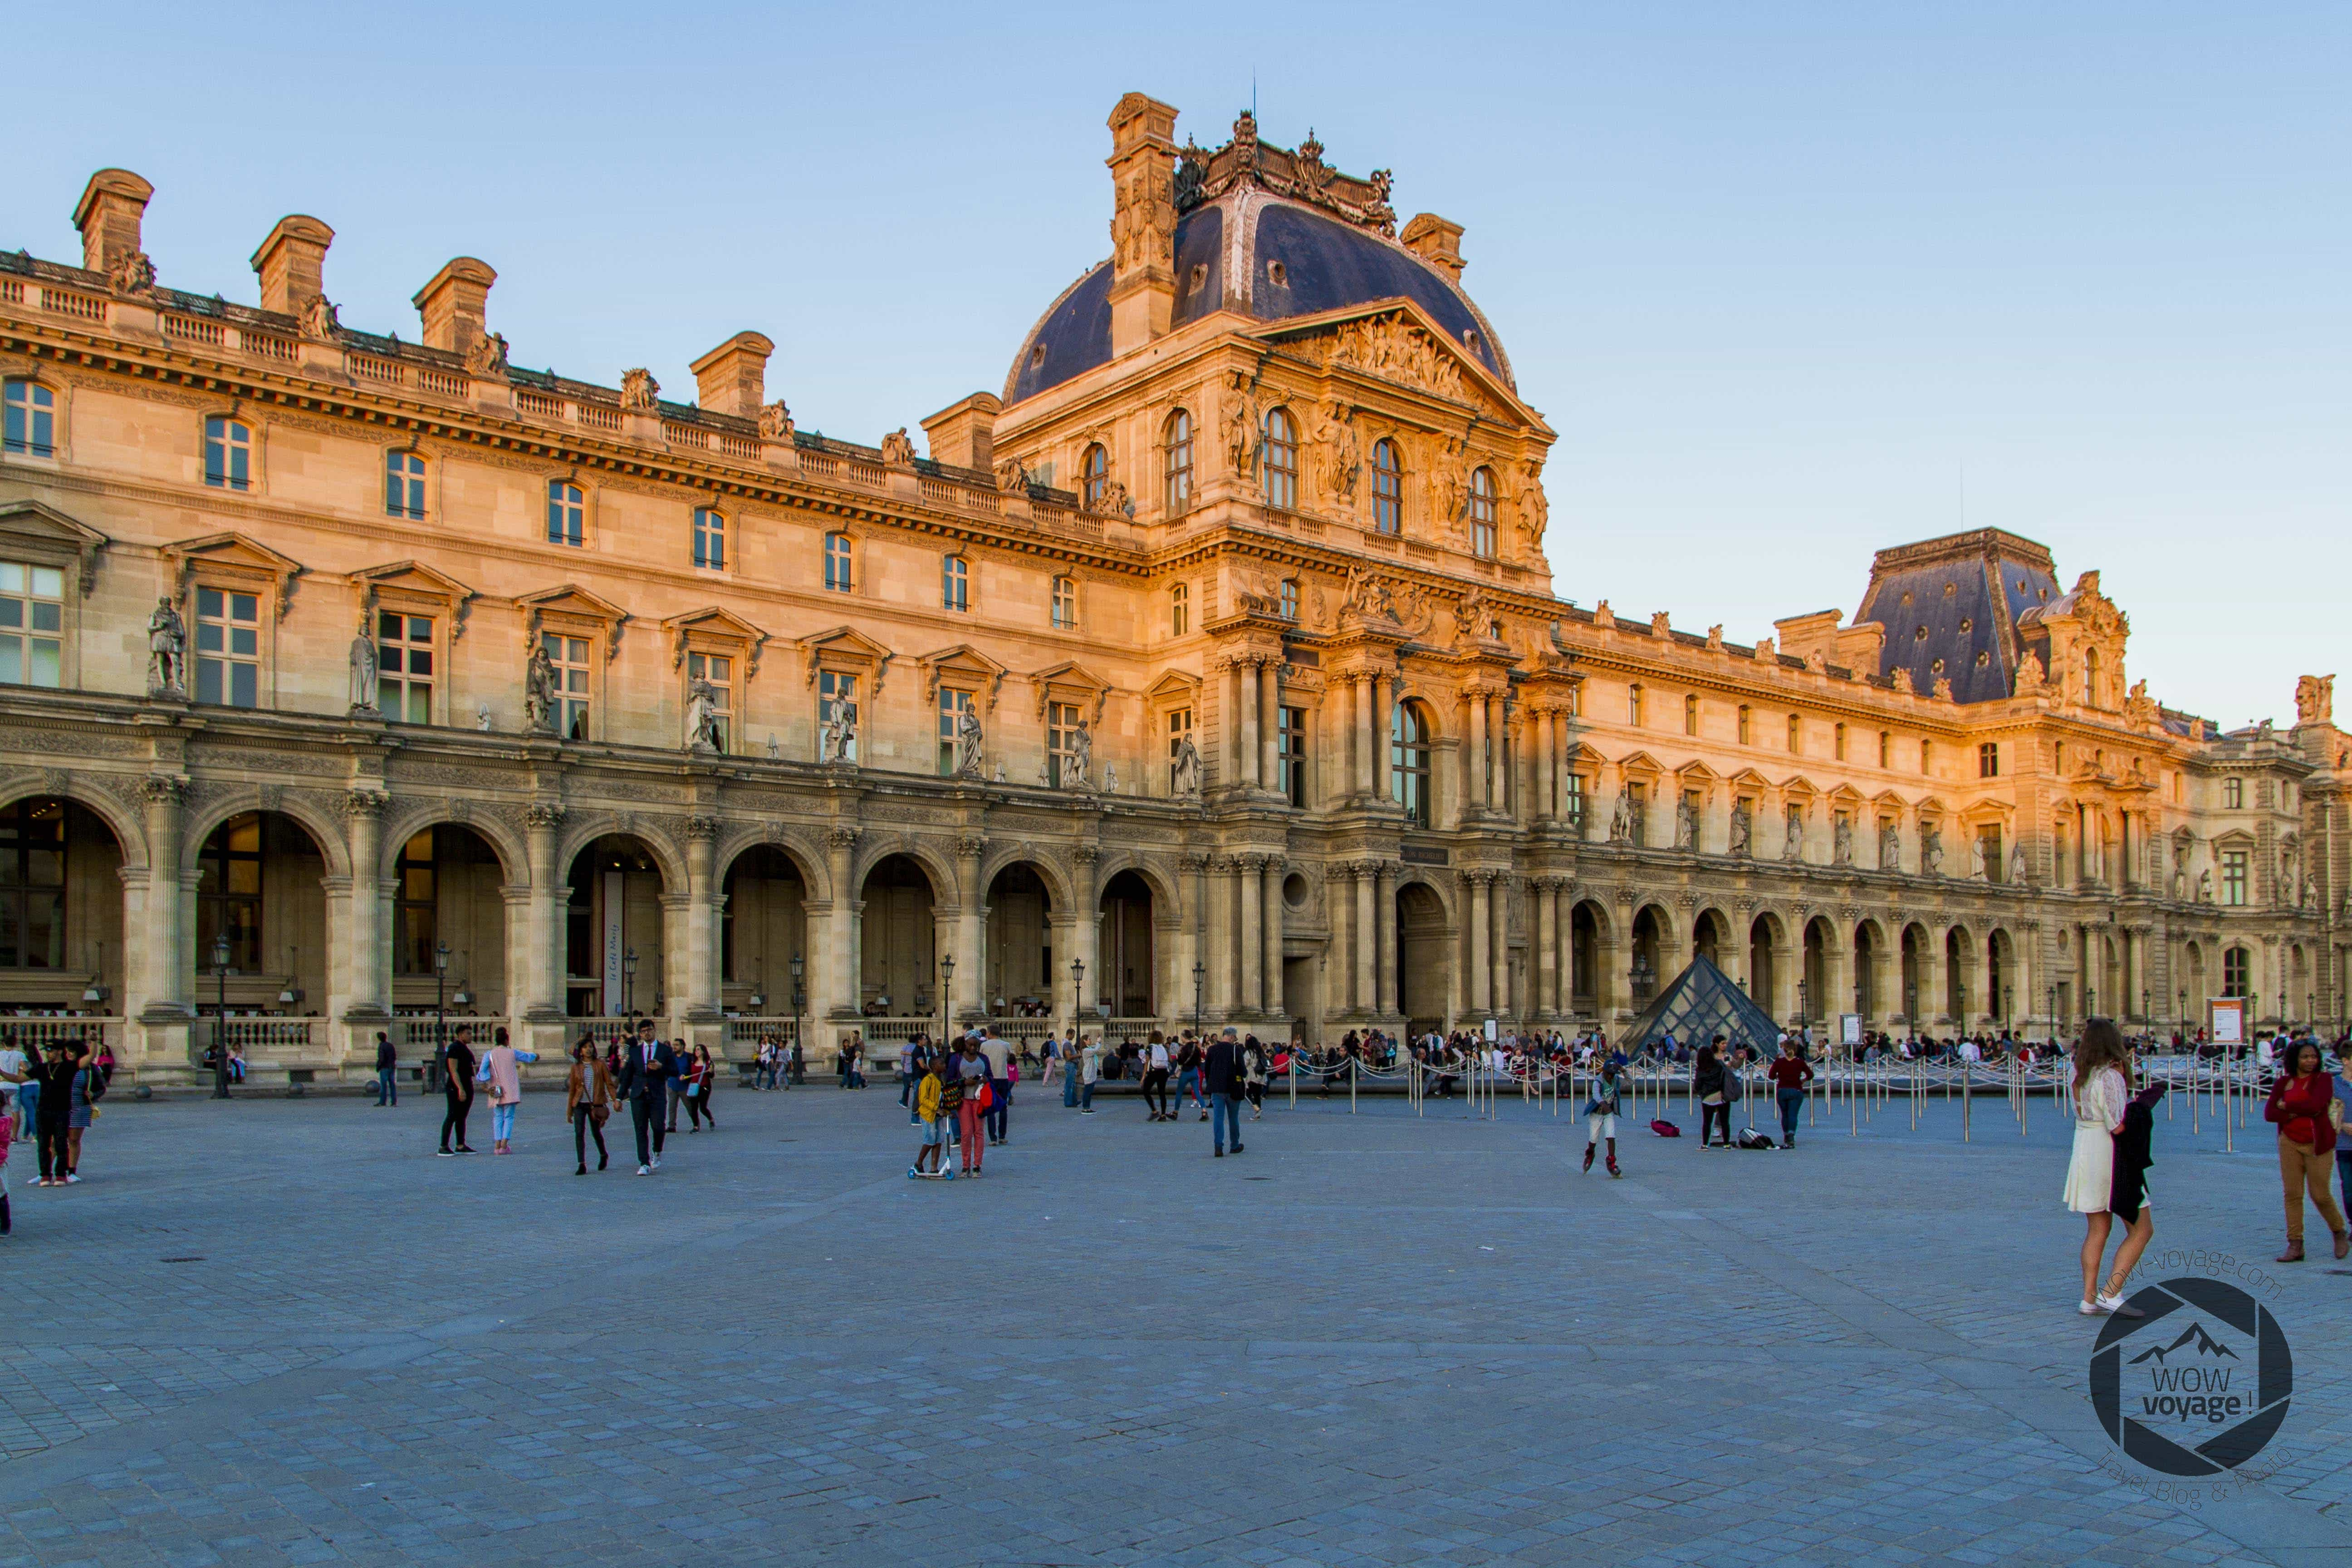 Louvre museum at sunset. People are walking